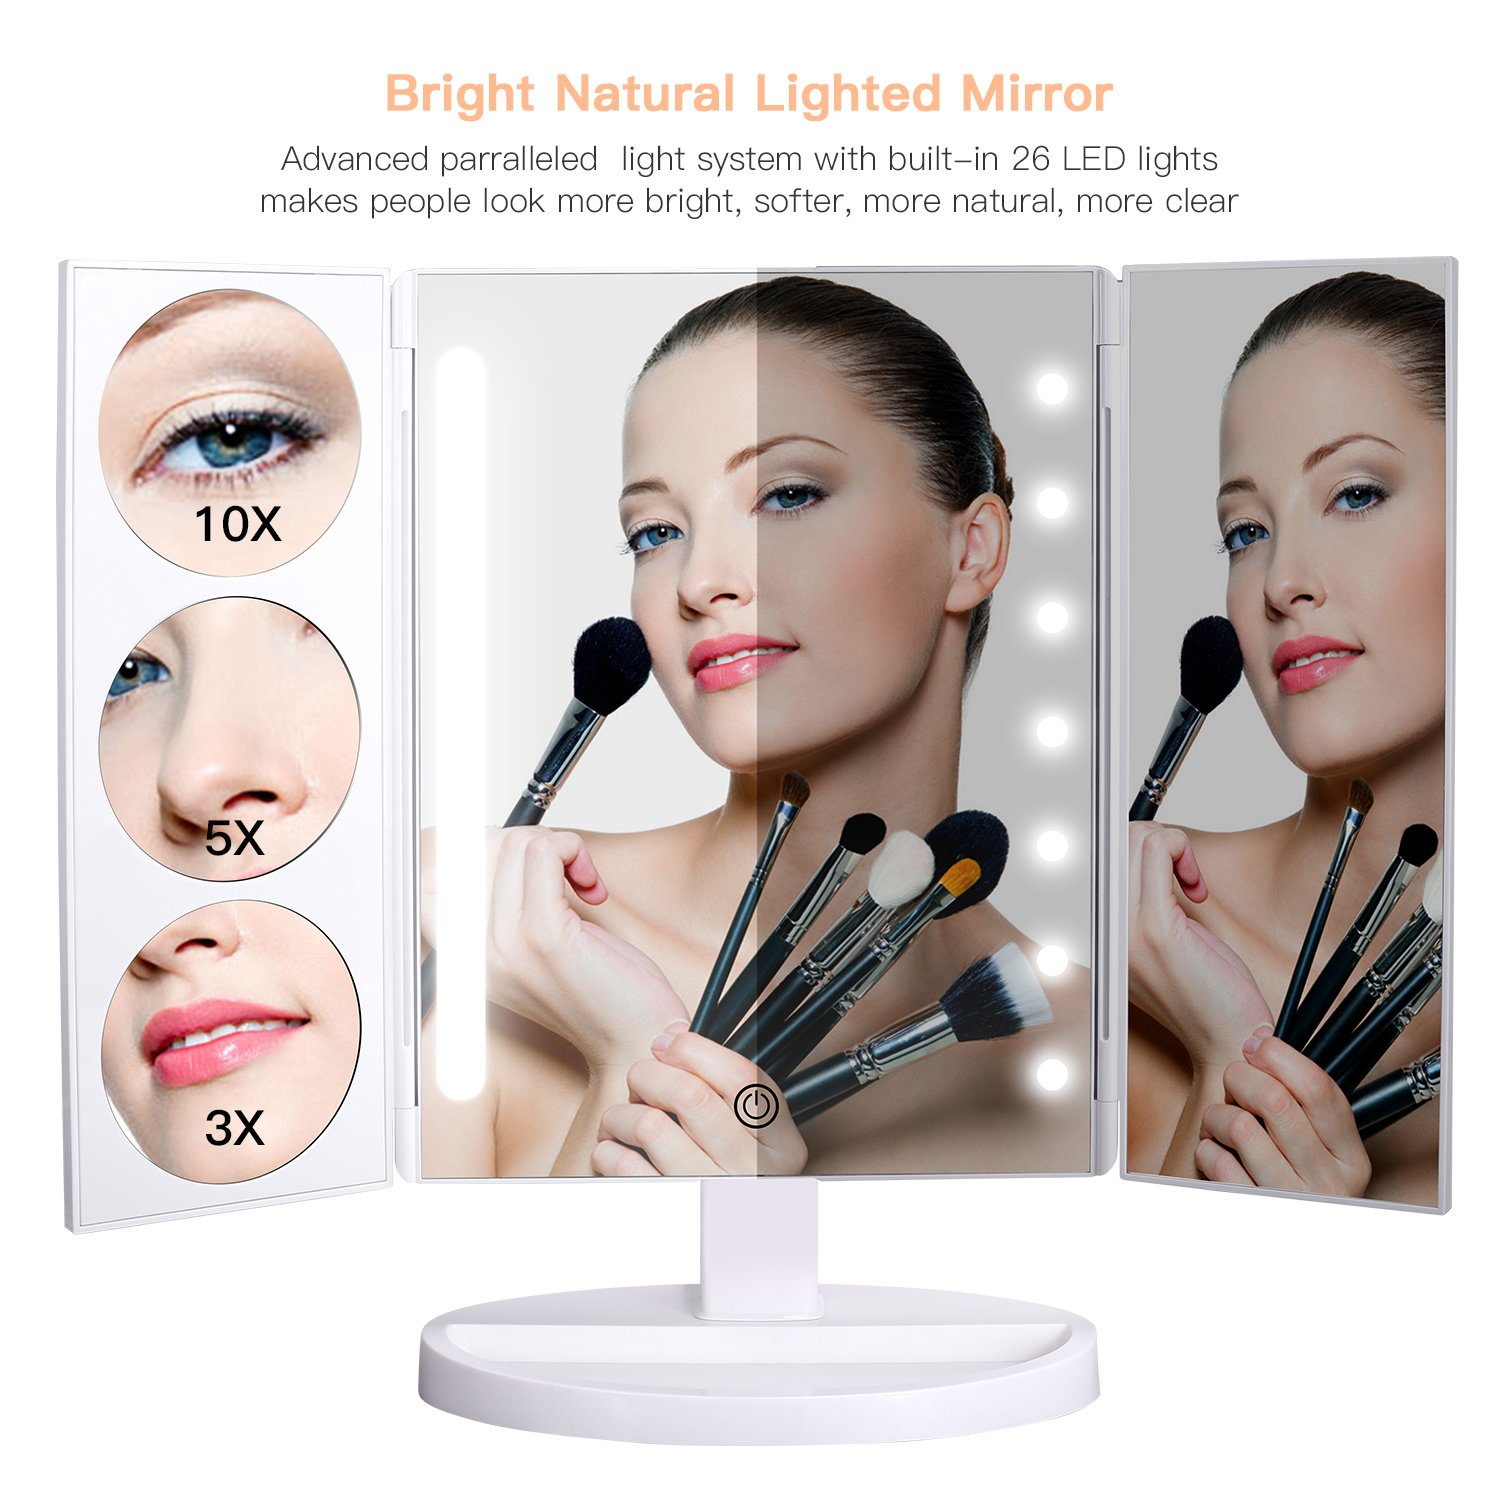 BESTOPE Makeup Mirror Oversize 18.8inch Lighted Vanity Mirror with 10X/5X/3X Magnification, 26 LED Light Trifold Cosmetic Mirror with 360° Rotation and Touch Screen by BESTOPE (Image #2)